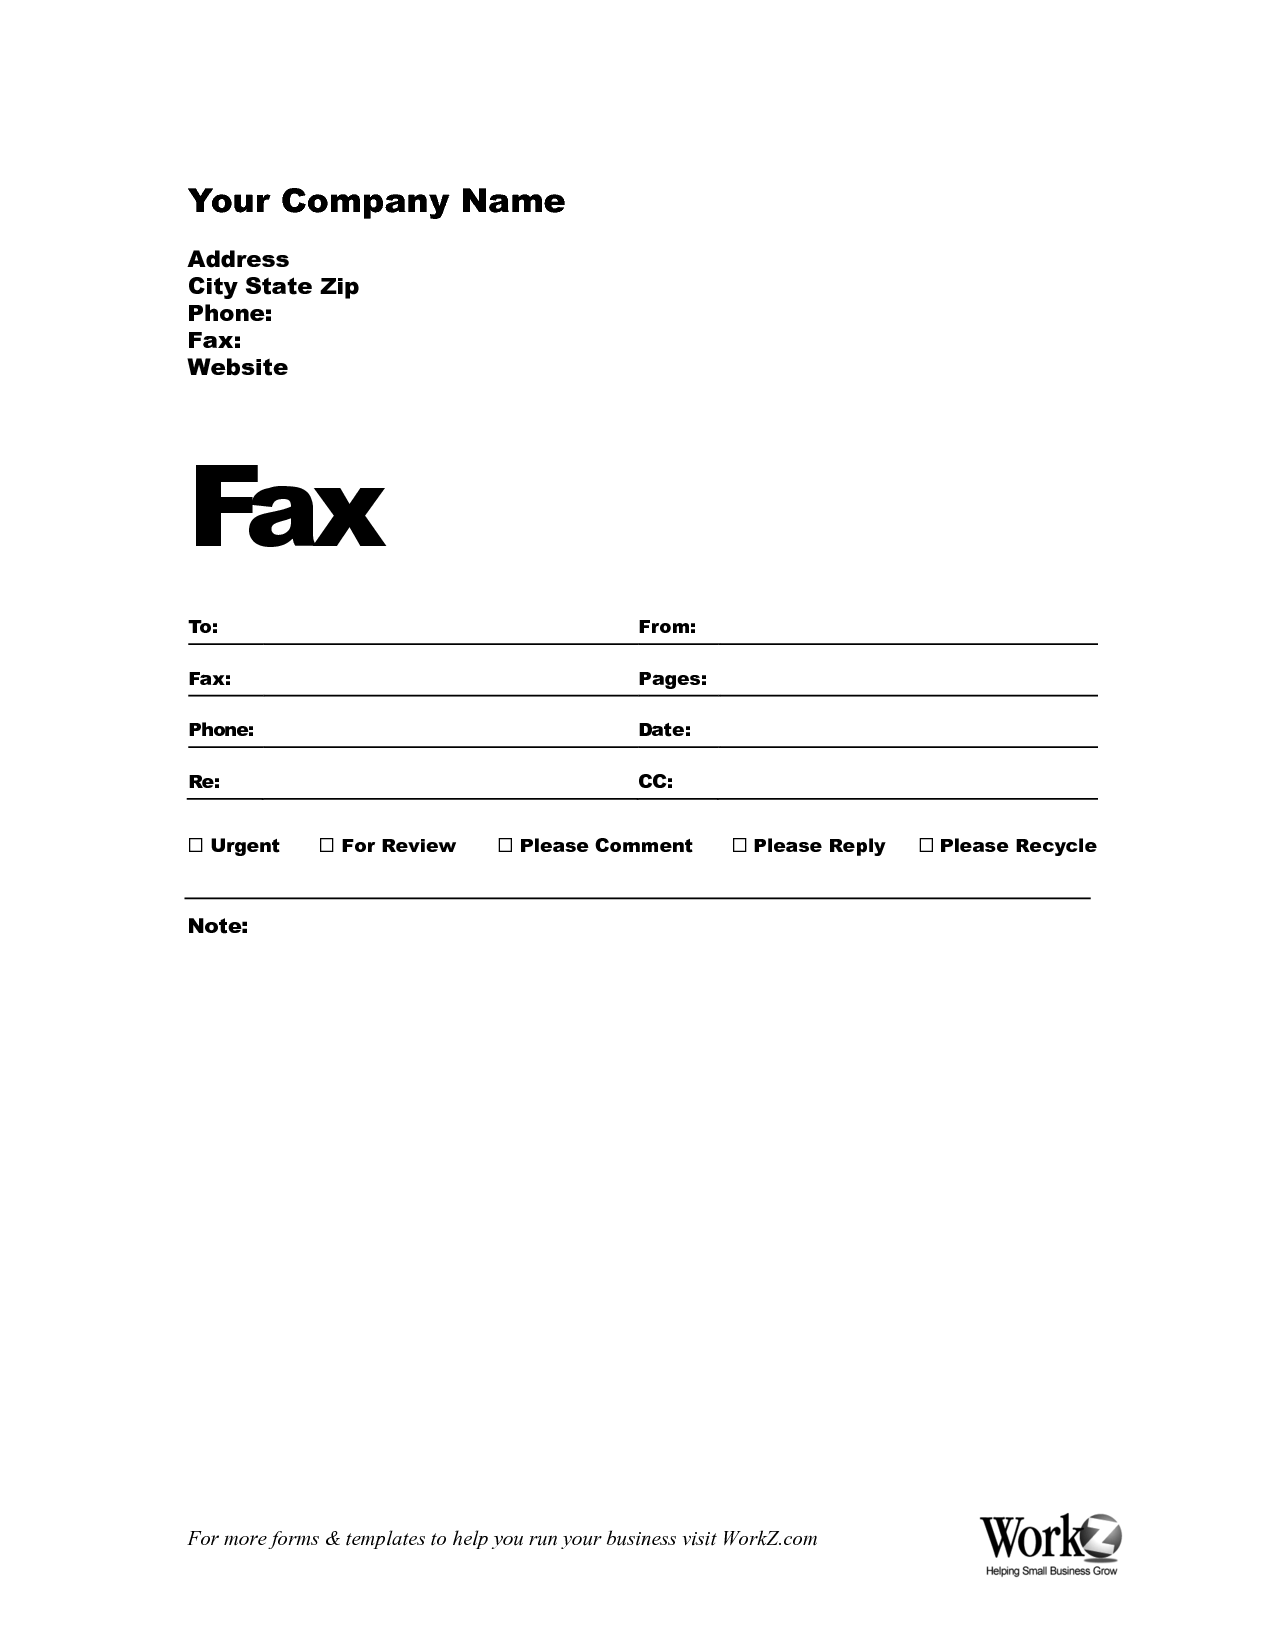 Doc432561 Fax Cover Sheet Free Template Free Fax Cover Sheet – Fax Cover Sheets Templates Free